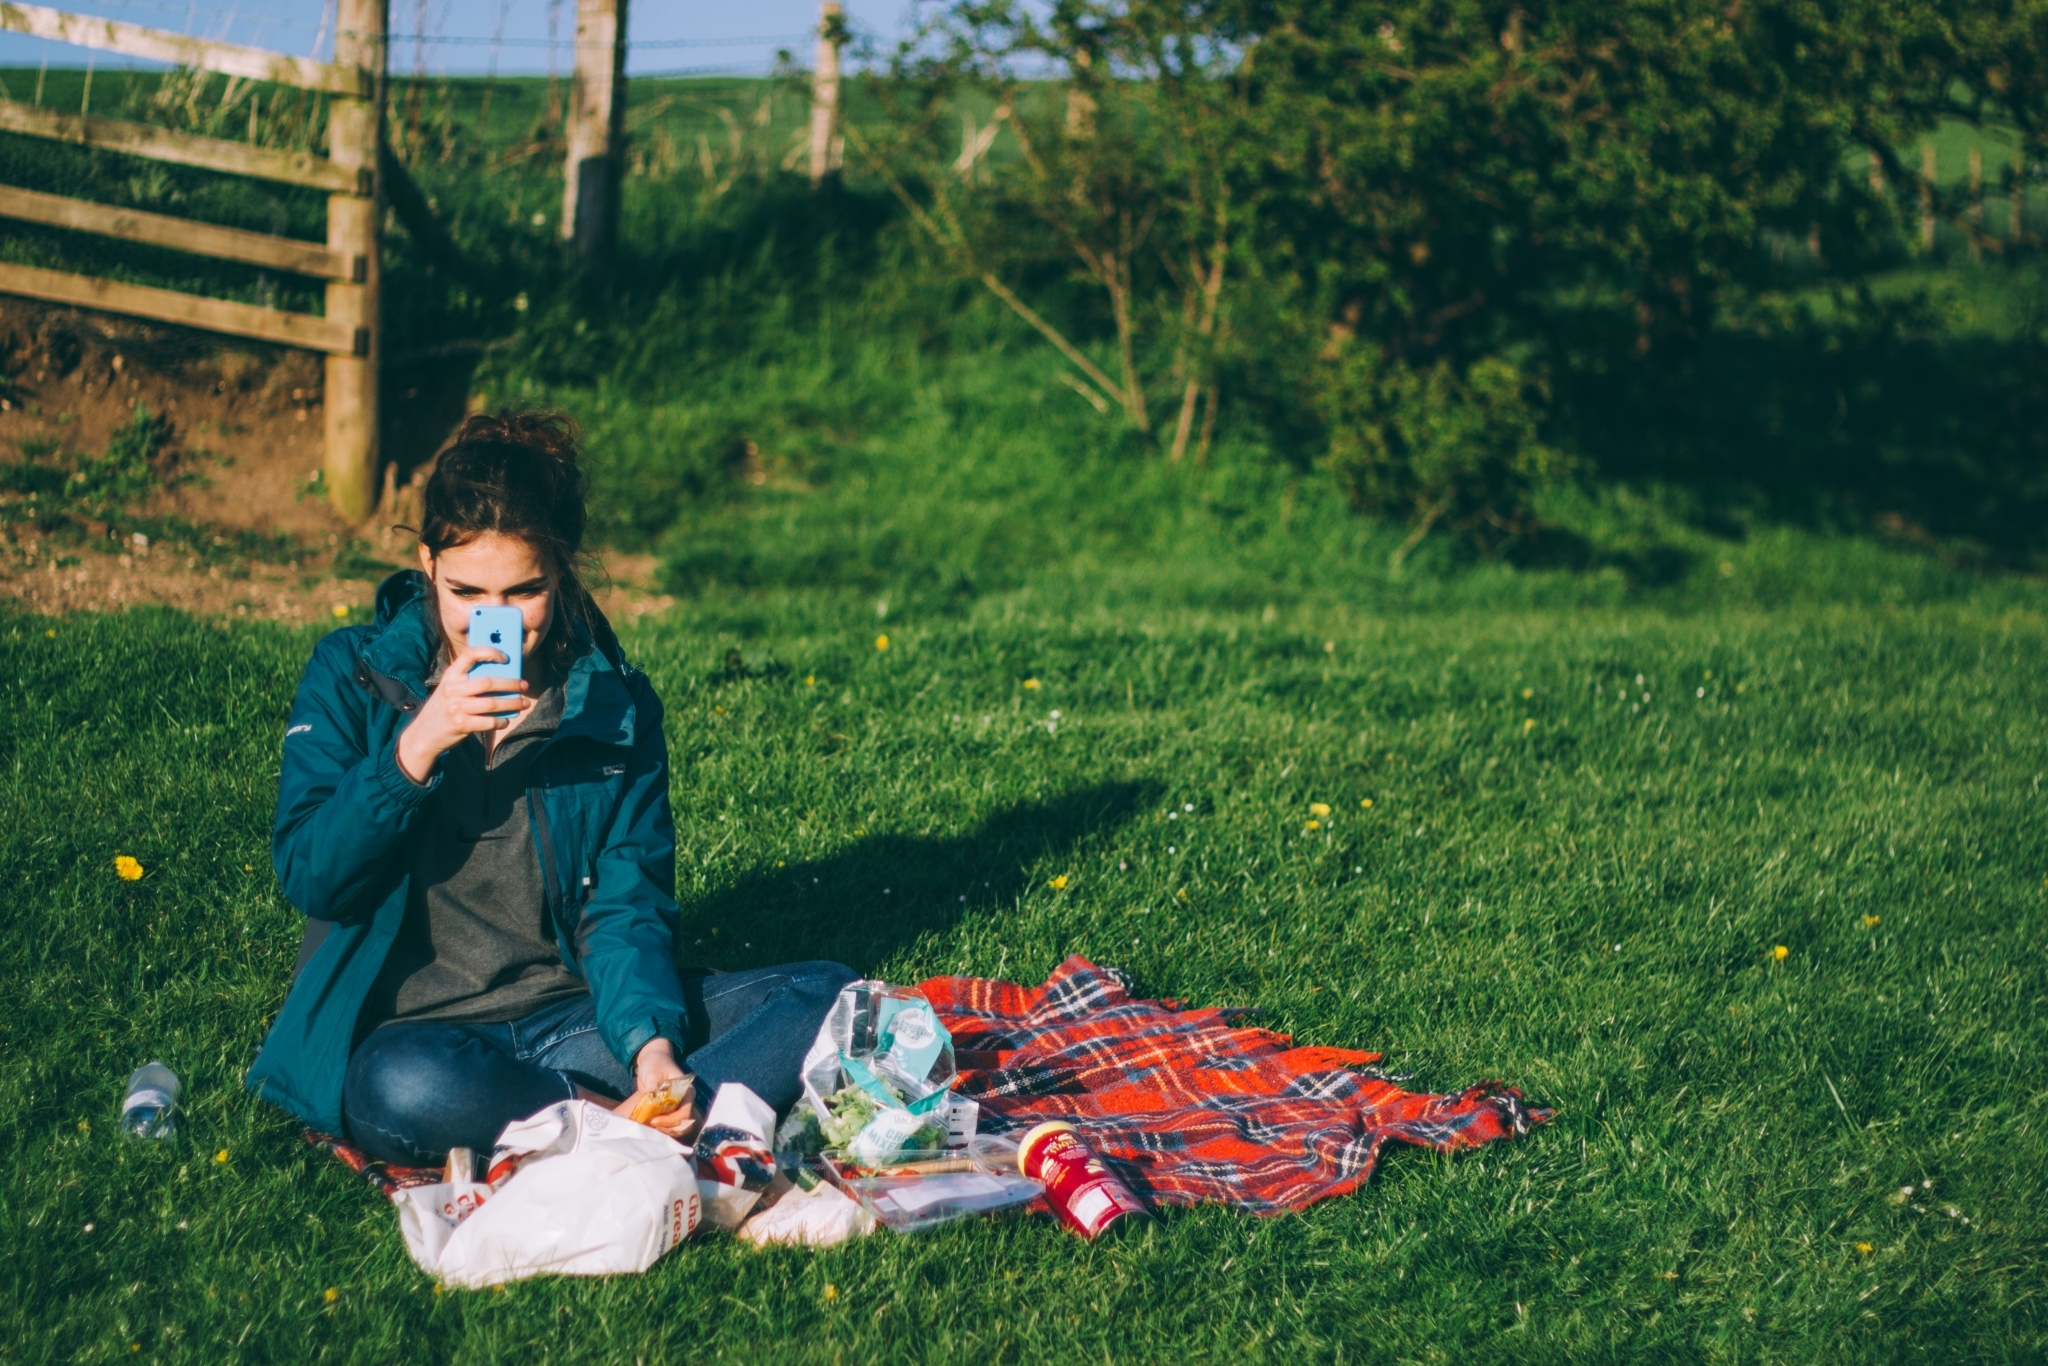 Five of the best picnic spots close to Westport